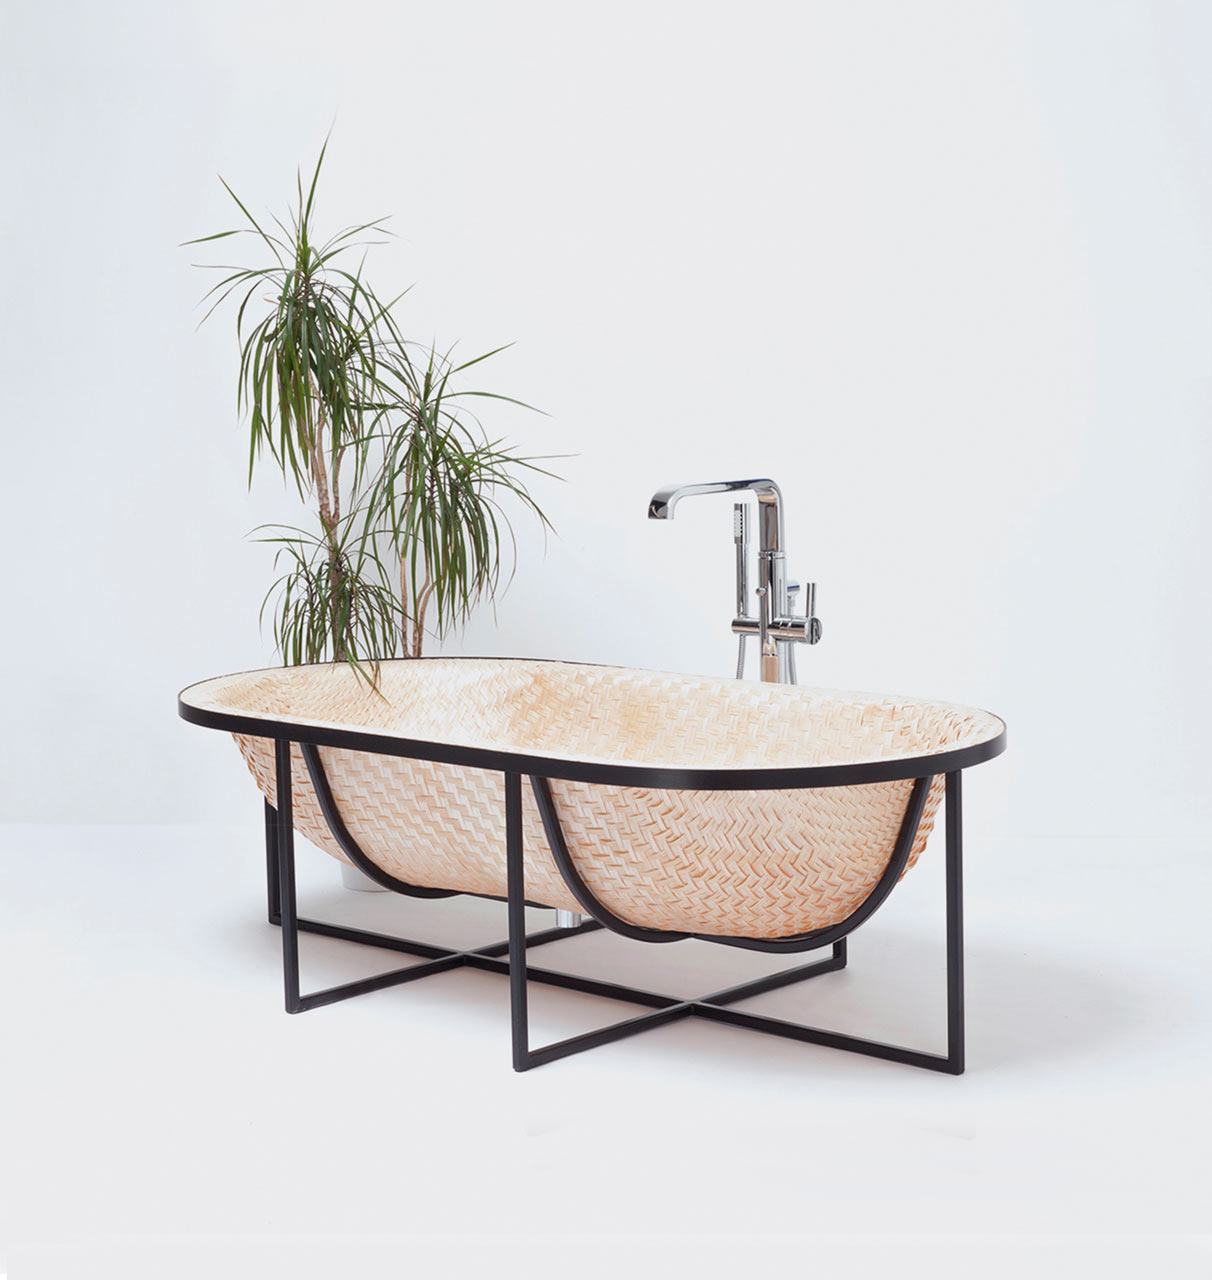 A Bathtub Inspired by Traditional Asian Boat Building Techniques